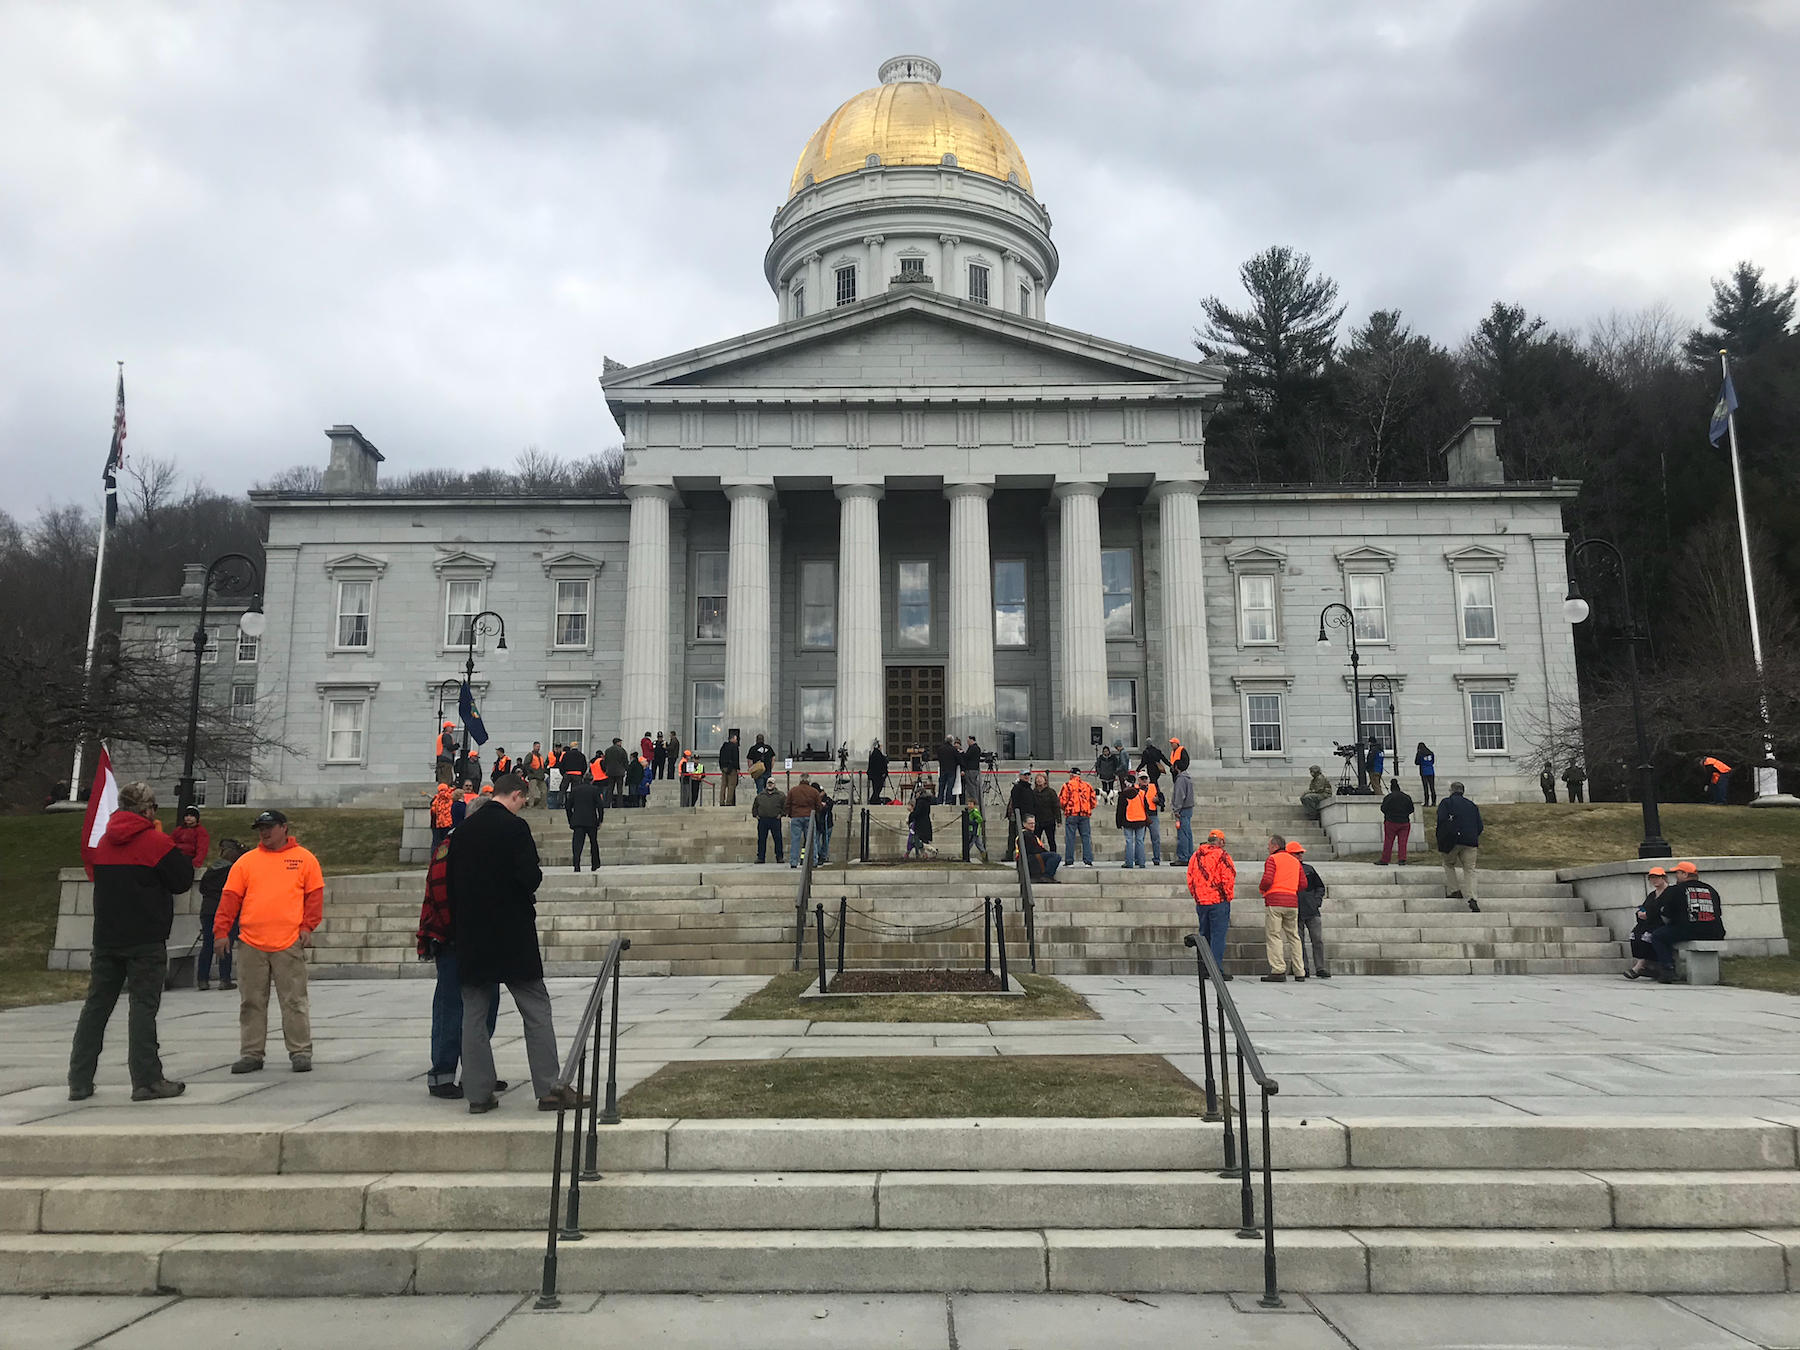 The front of the Vermont Statehouse, prior to the Gov. Phil Scott's guns-reform bill signing Wednesday. The governor made an open invitation on Twitter for people to join him for at the bill signing. Photo by Emily Alfin Johnson for VPR.